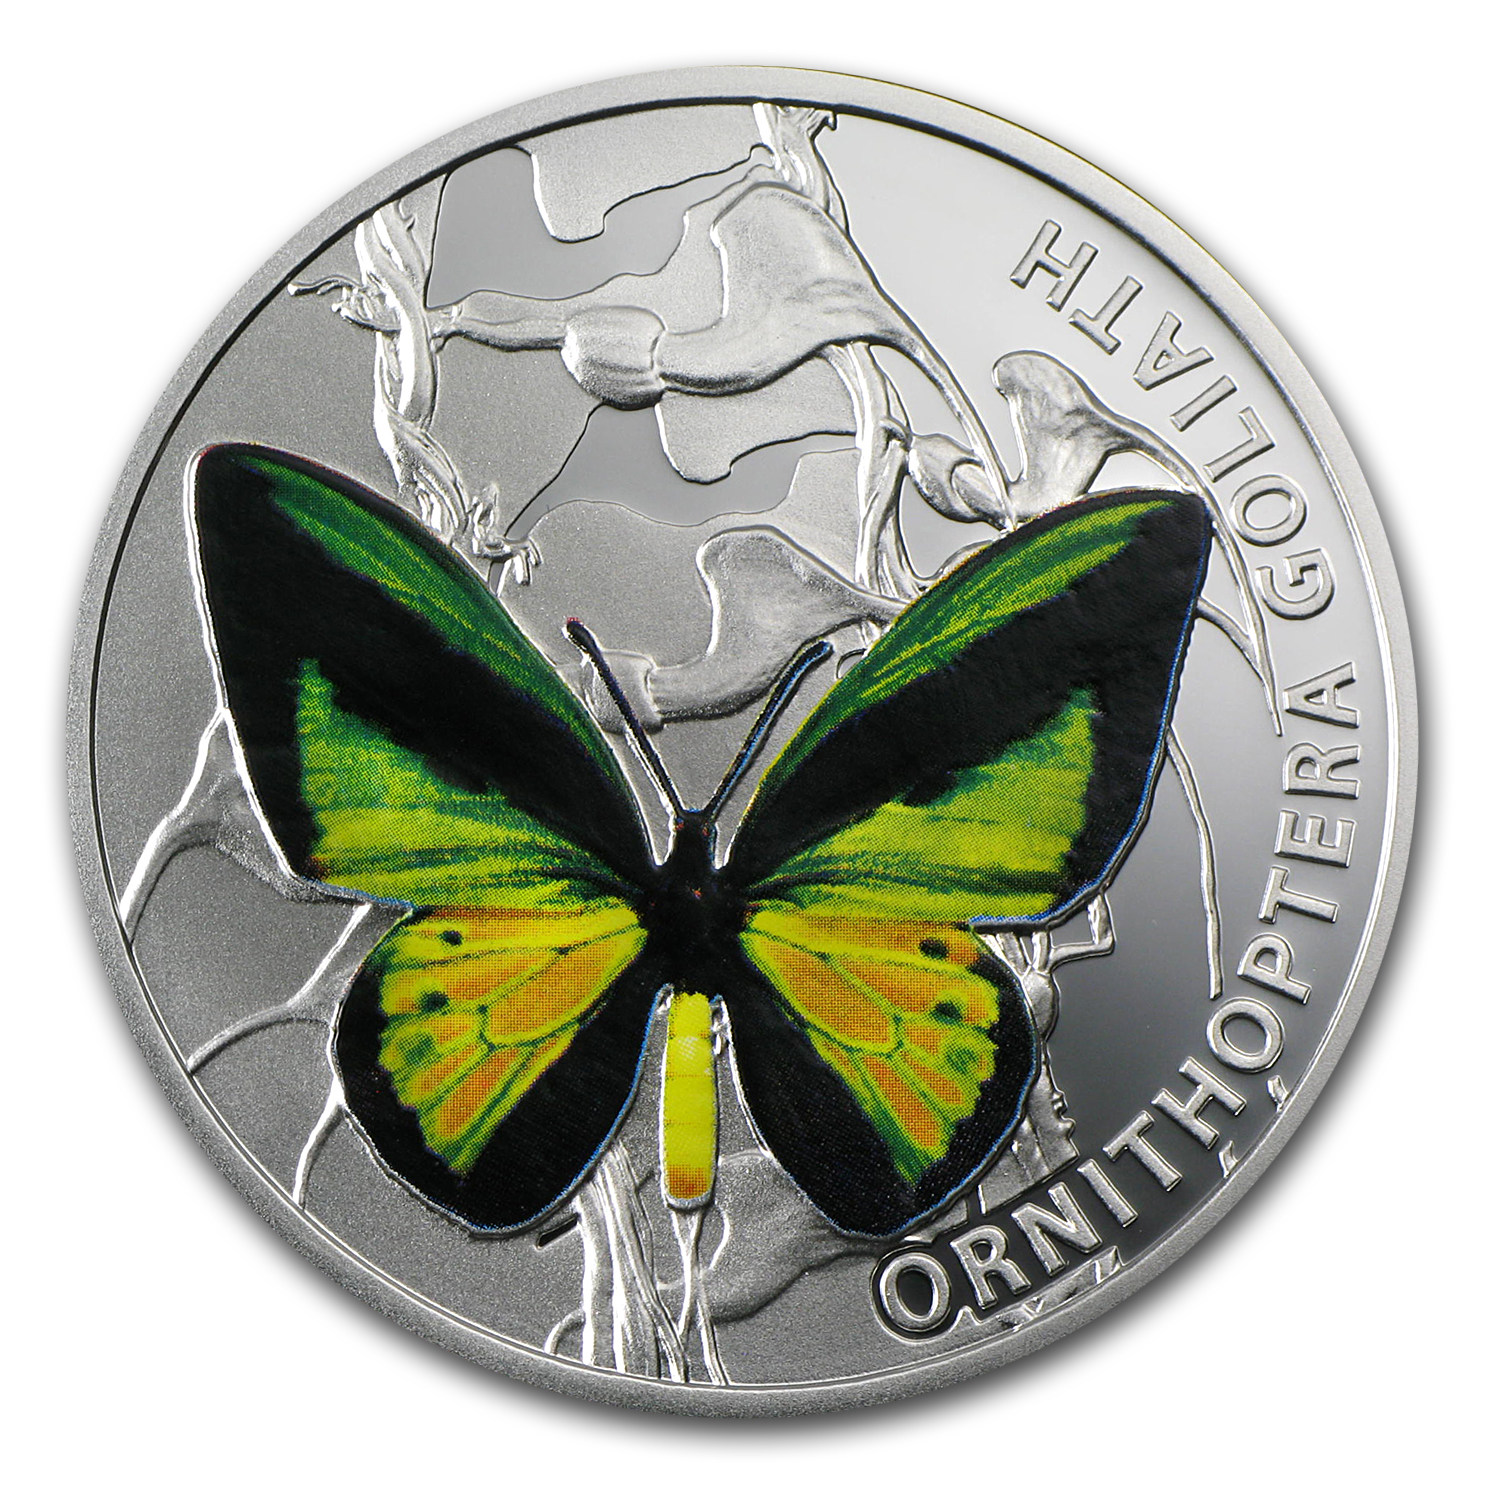 Niue 2012 Proof Silver $1 Butterflies - Goliath Birdwing